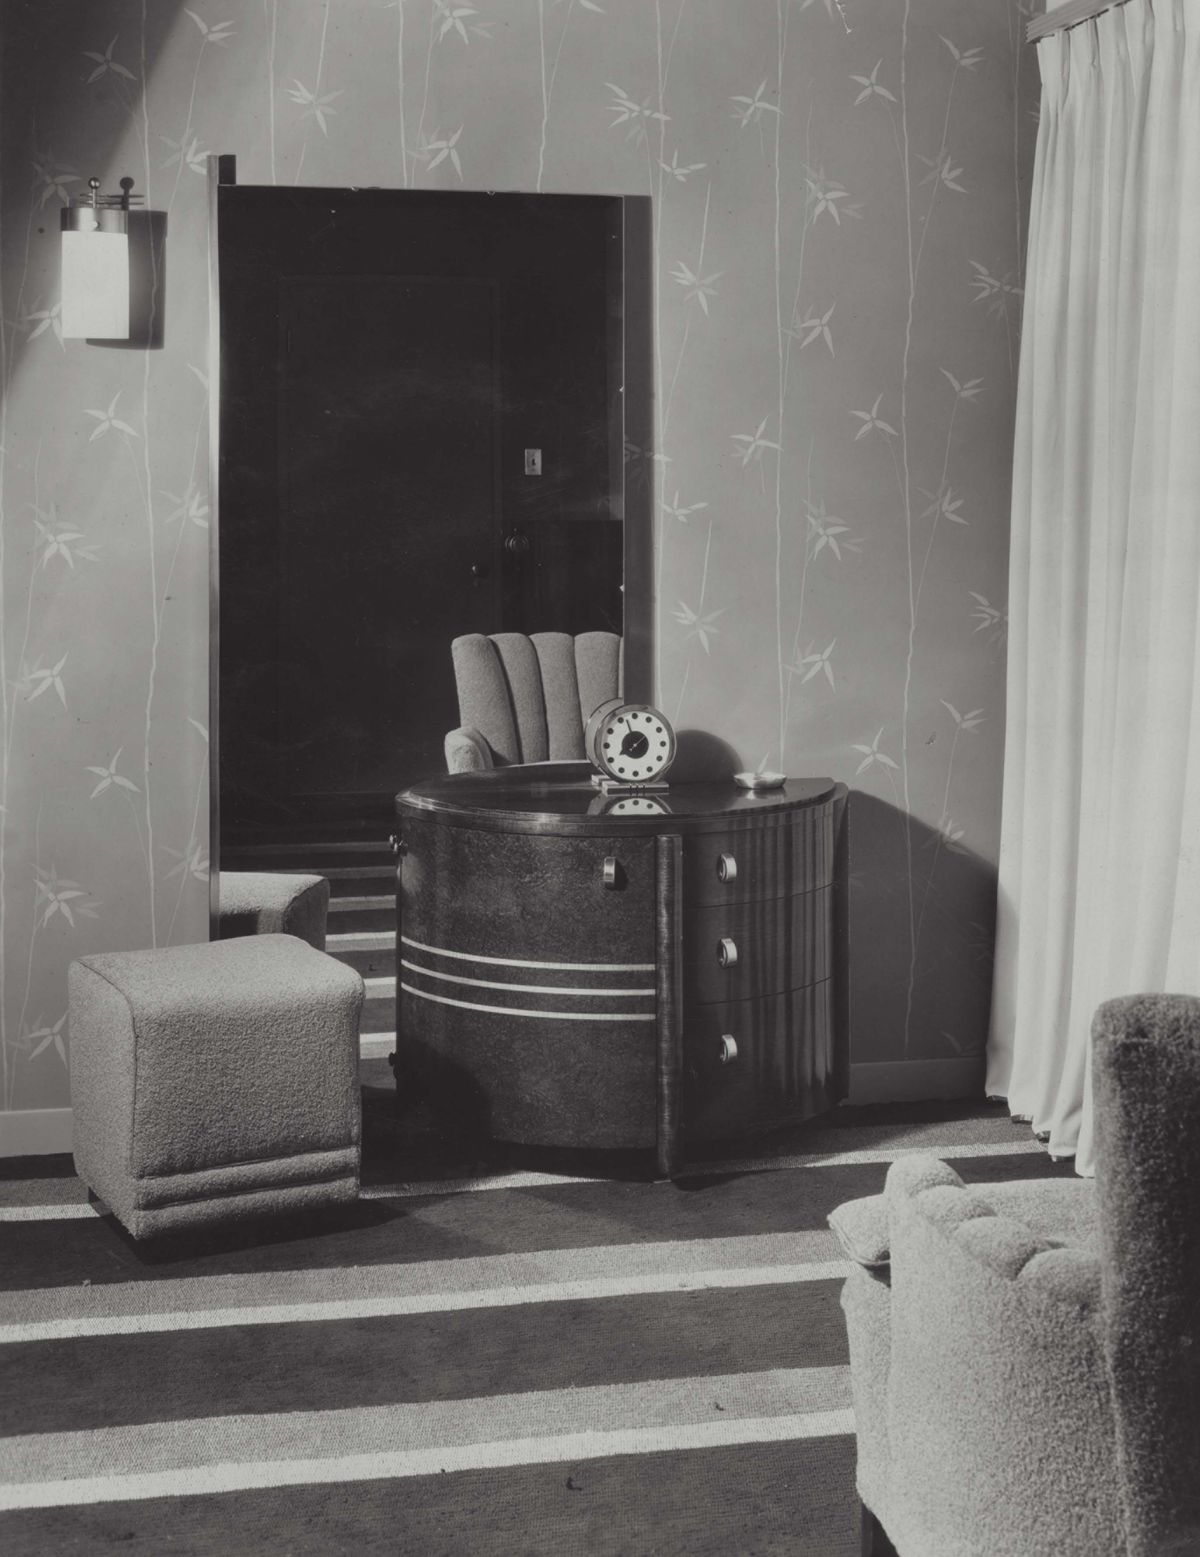 A bedroom with a table, chairs, and wallpaper in Herman Miller's Design for Living House.